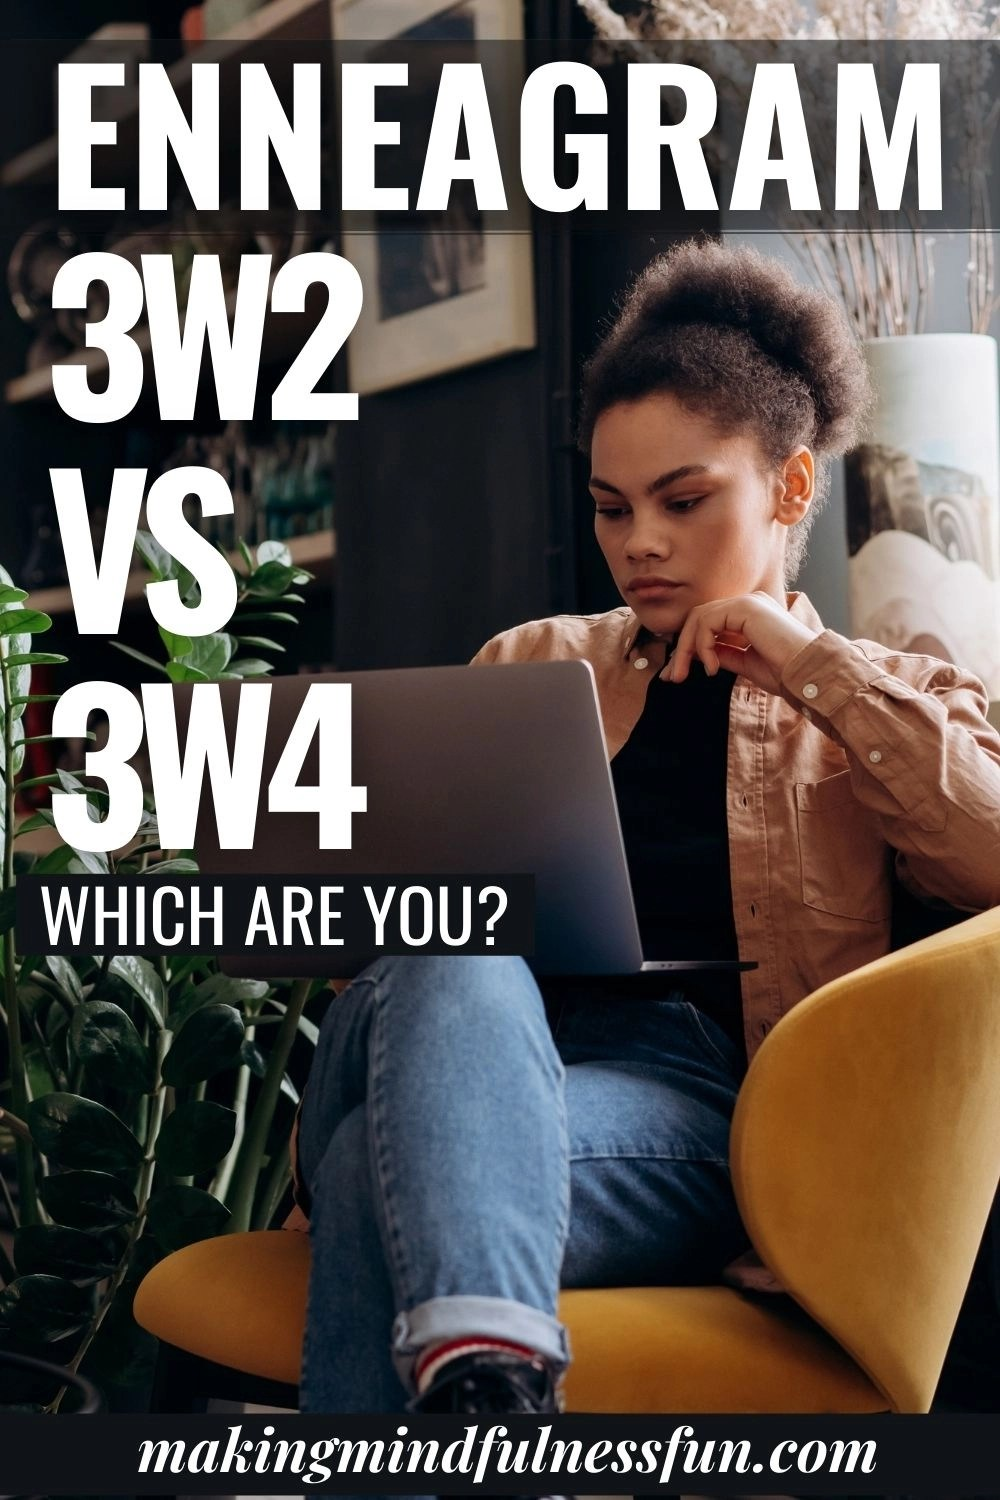 Enneagram 3w2 vs 3w4 Which Are You?